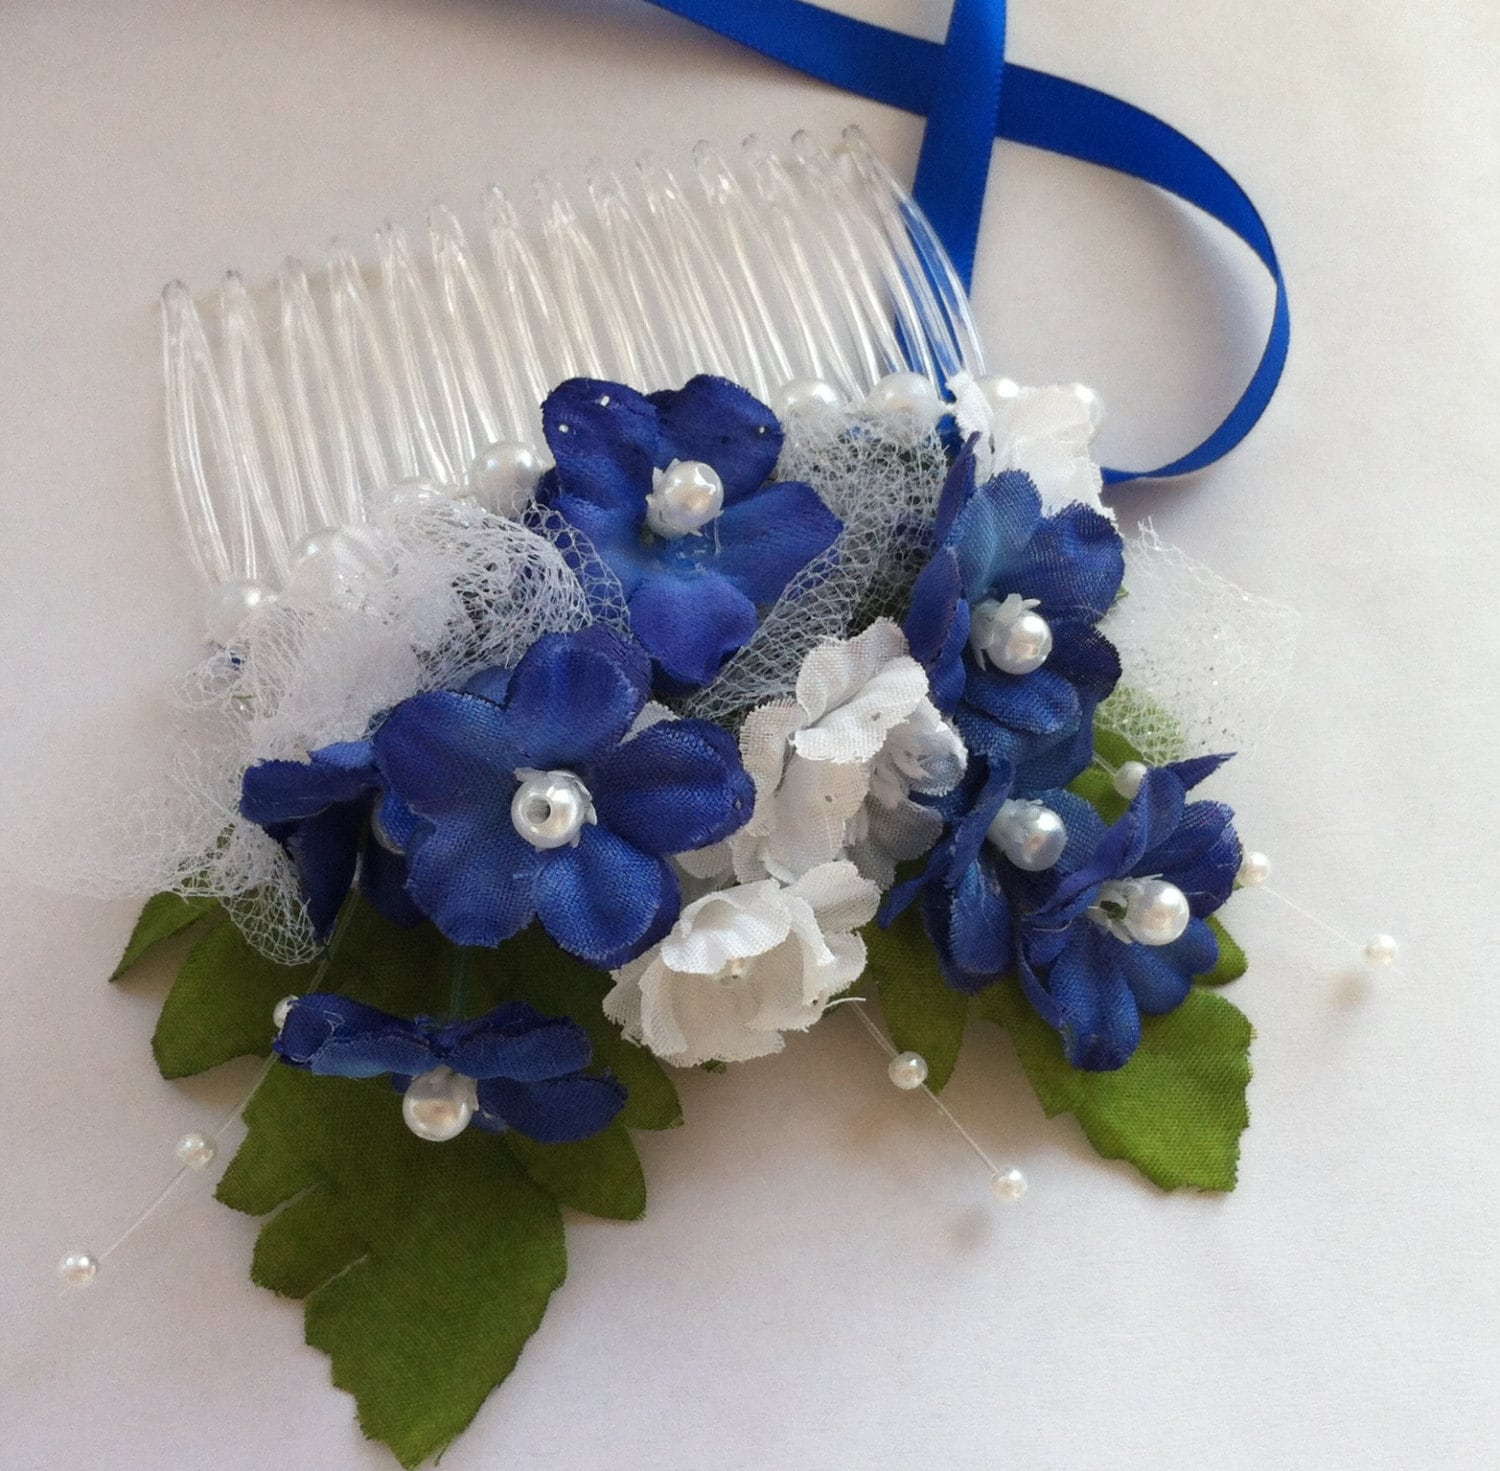 Royal blue hair comb bride bridesmaid mother of the bride or groom royal blue hair comb bride bridesmaid mother of the bride or groom hair comb peice wedding dance accessory blue white cobalt royal p lucy izmirmasajfo